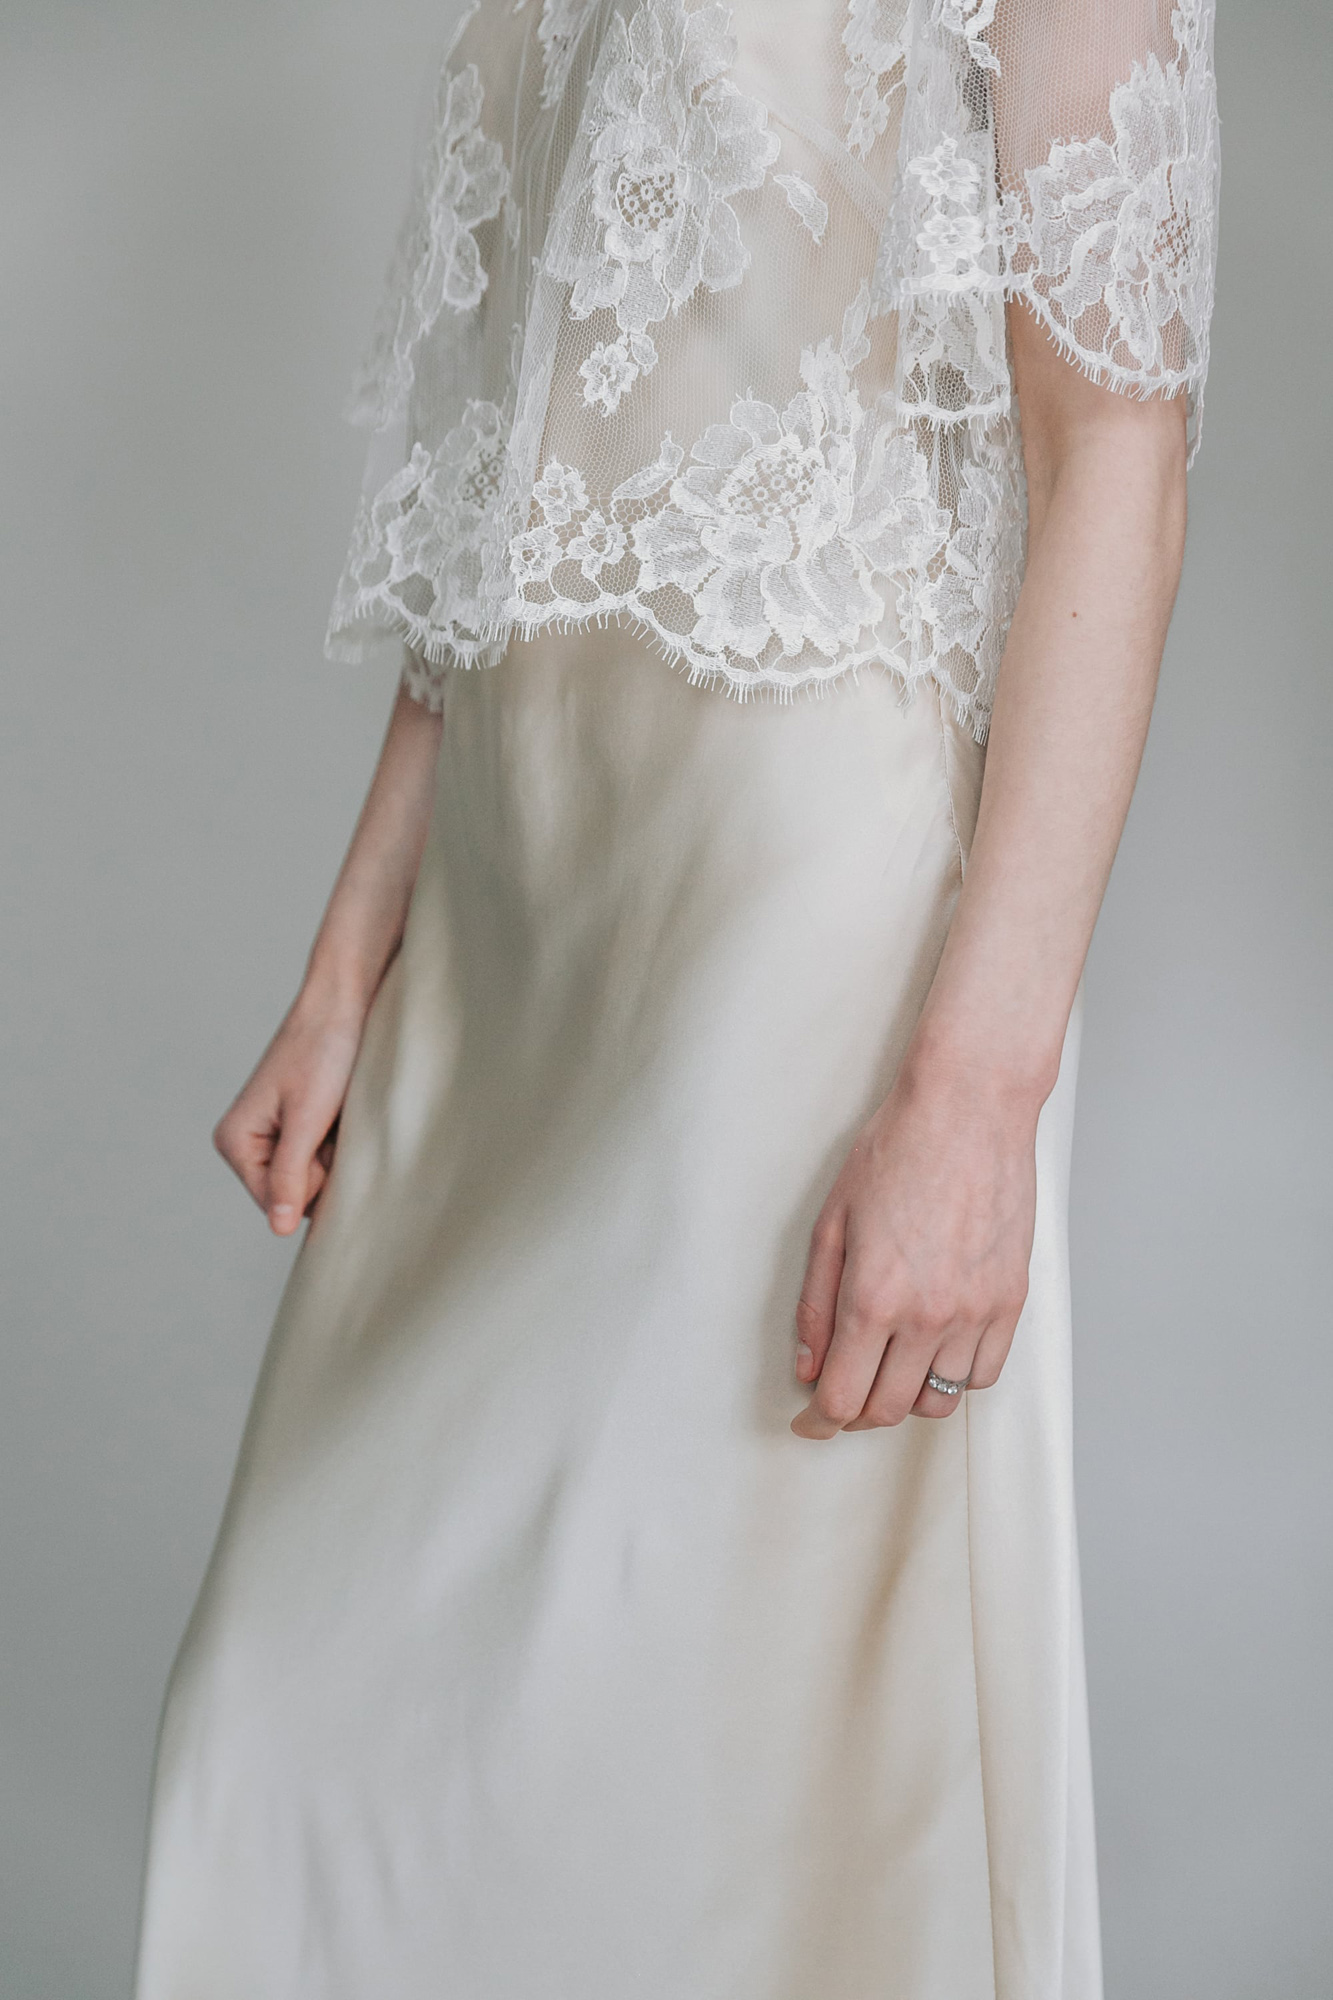 Kate-Beaumont-Sheffield-Rosa-Floral-Lace-Jacket-Thistle-Bias-Cut-Pearl-Silk-Wedding-Gown-5.jpg